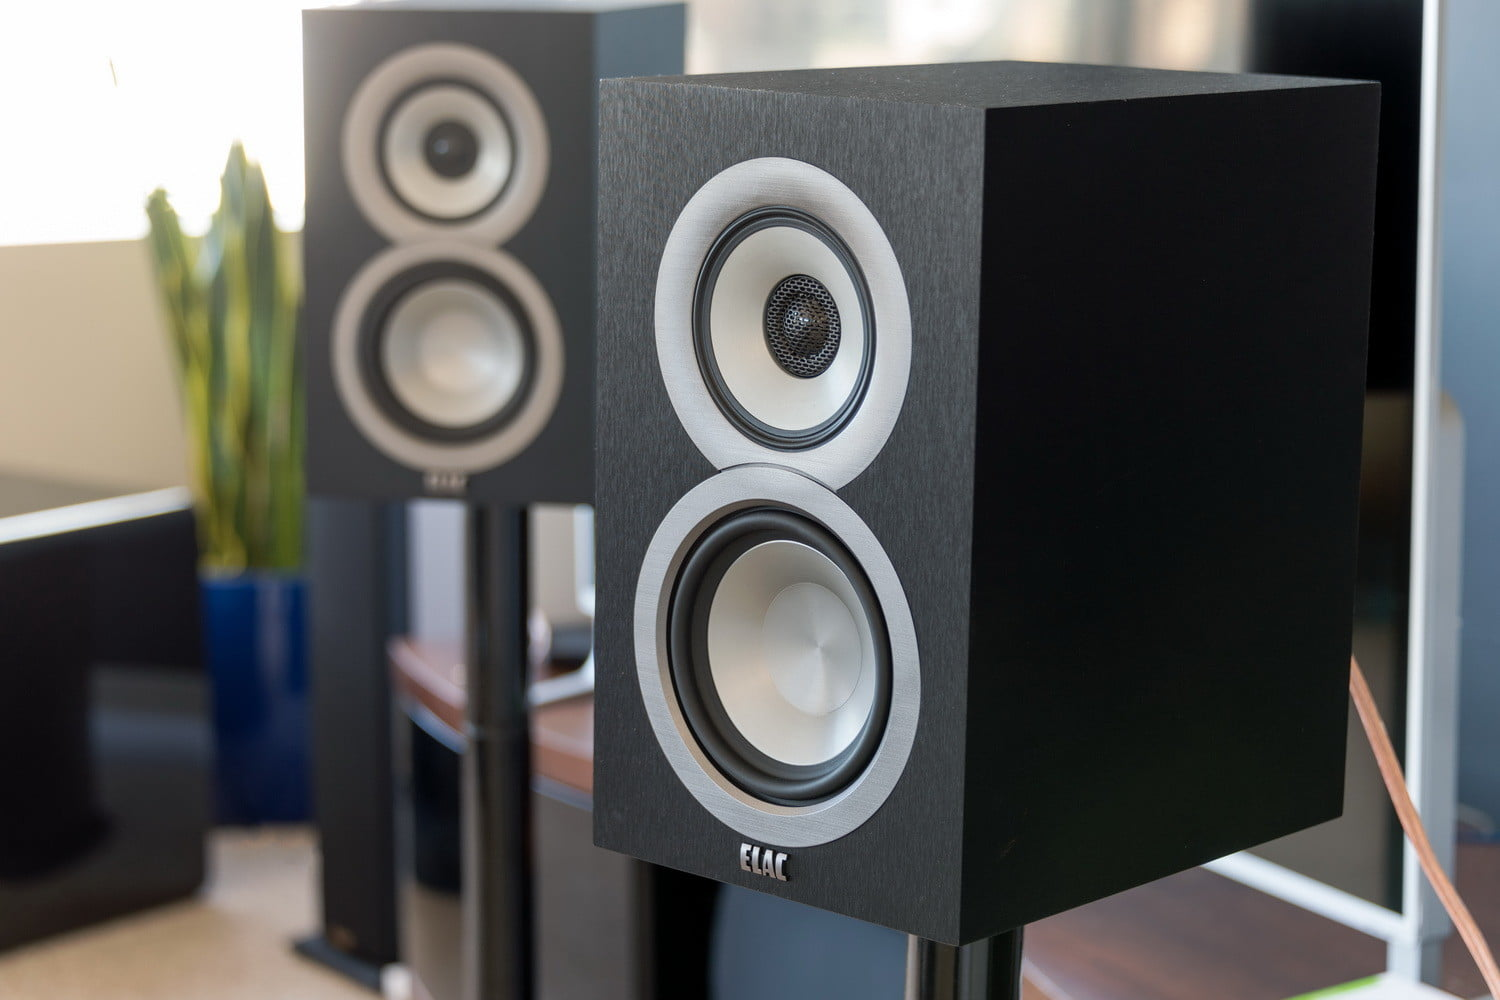 The Best Speakers For 2018